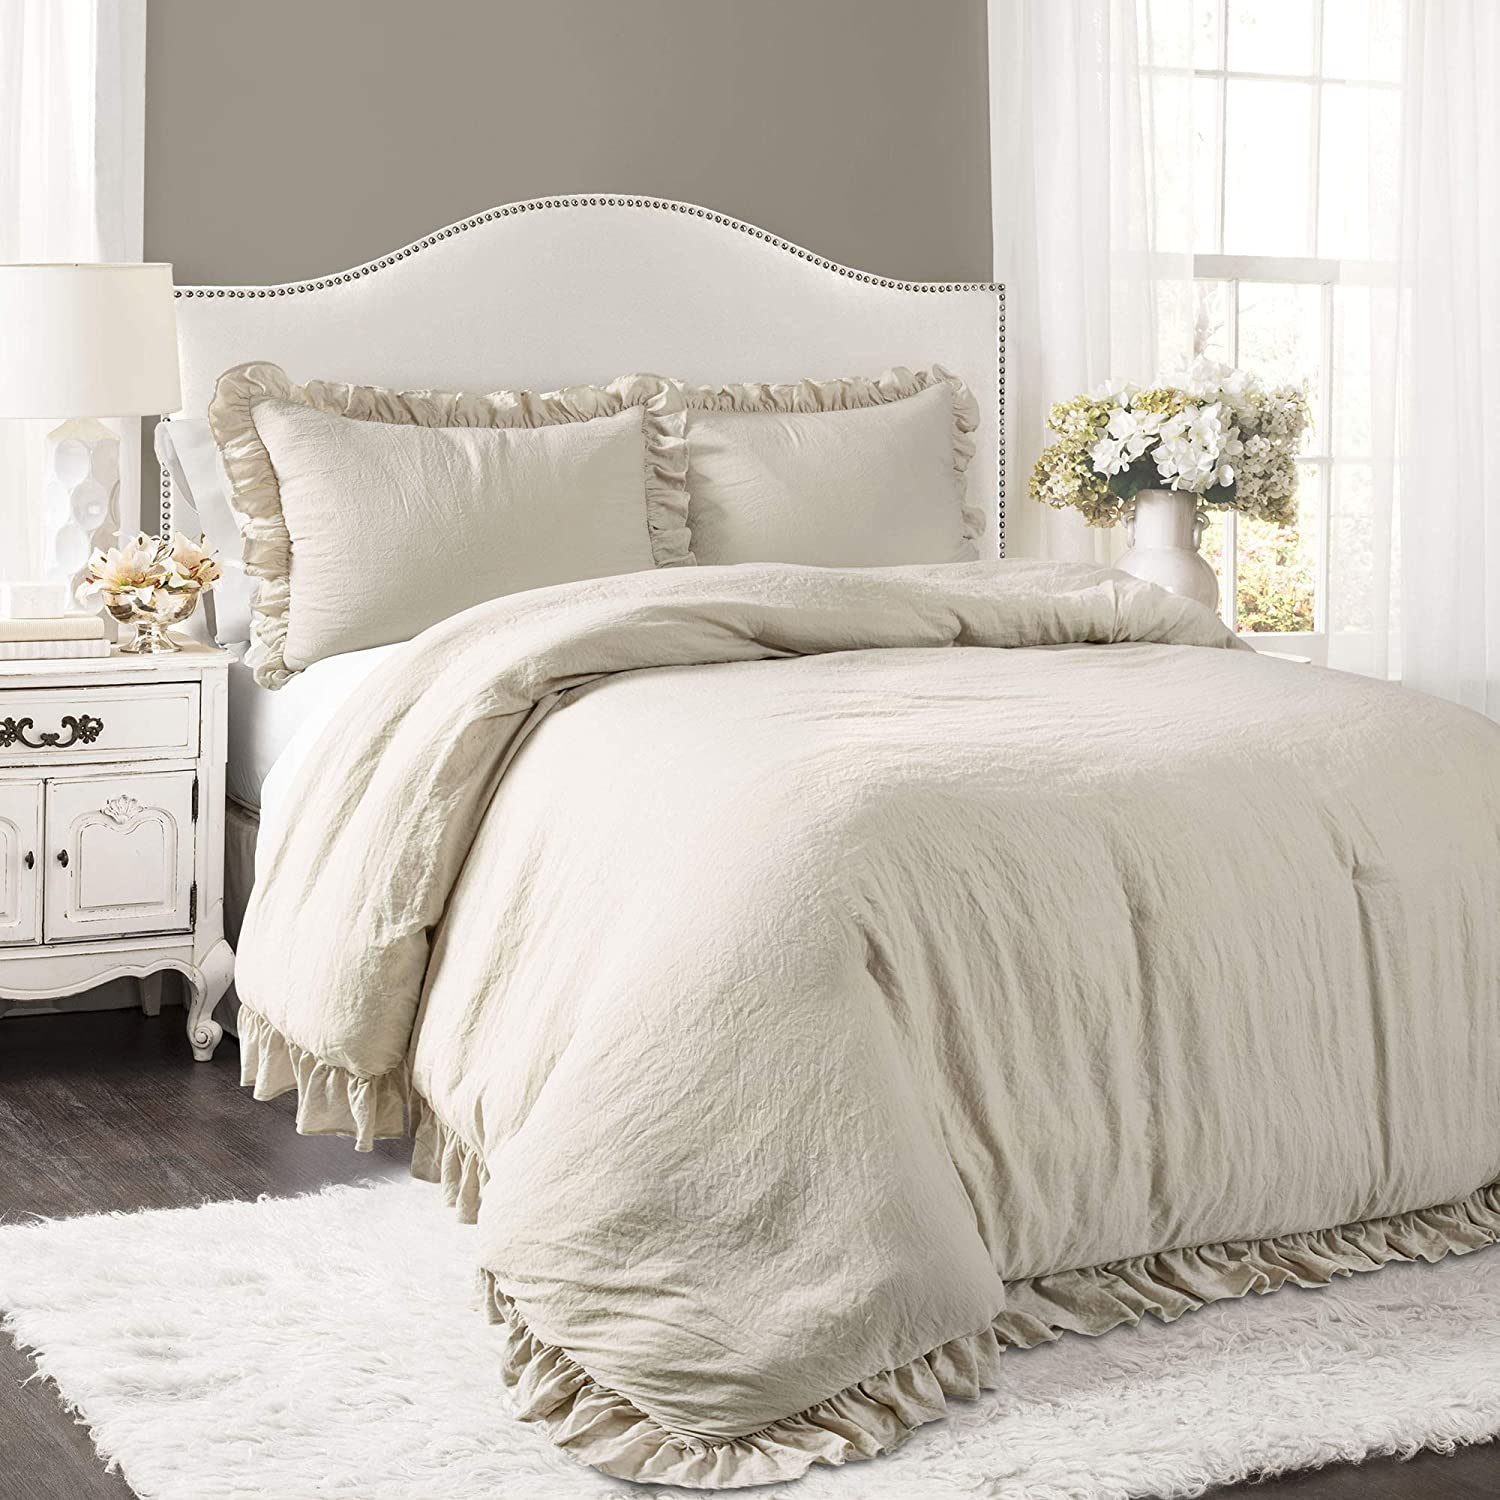 Lush Decor Reyna Comforter Wheat Ruffled 3 Piece Set with Pillow Sham King Size Bedding